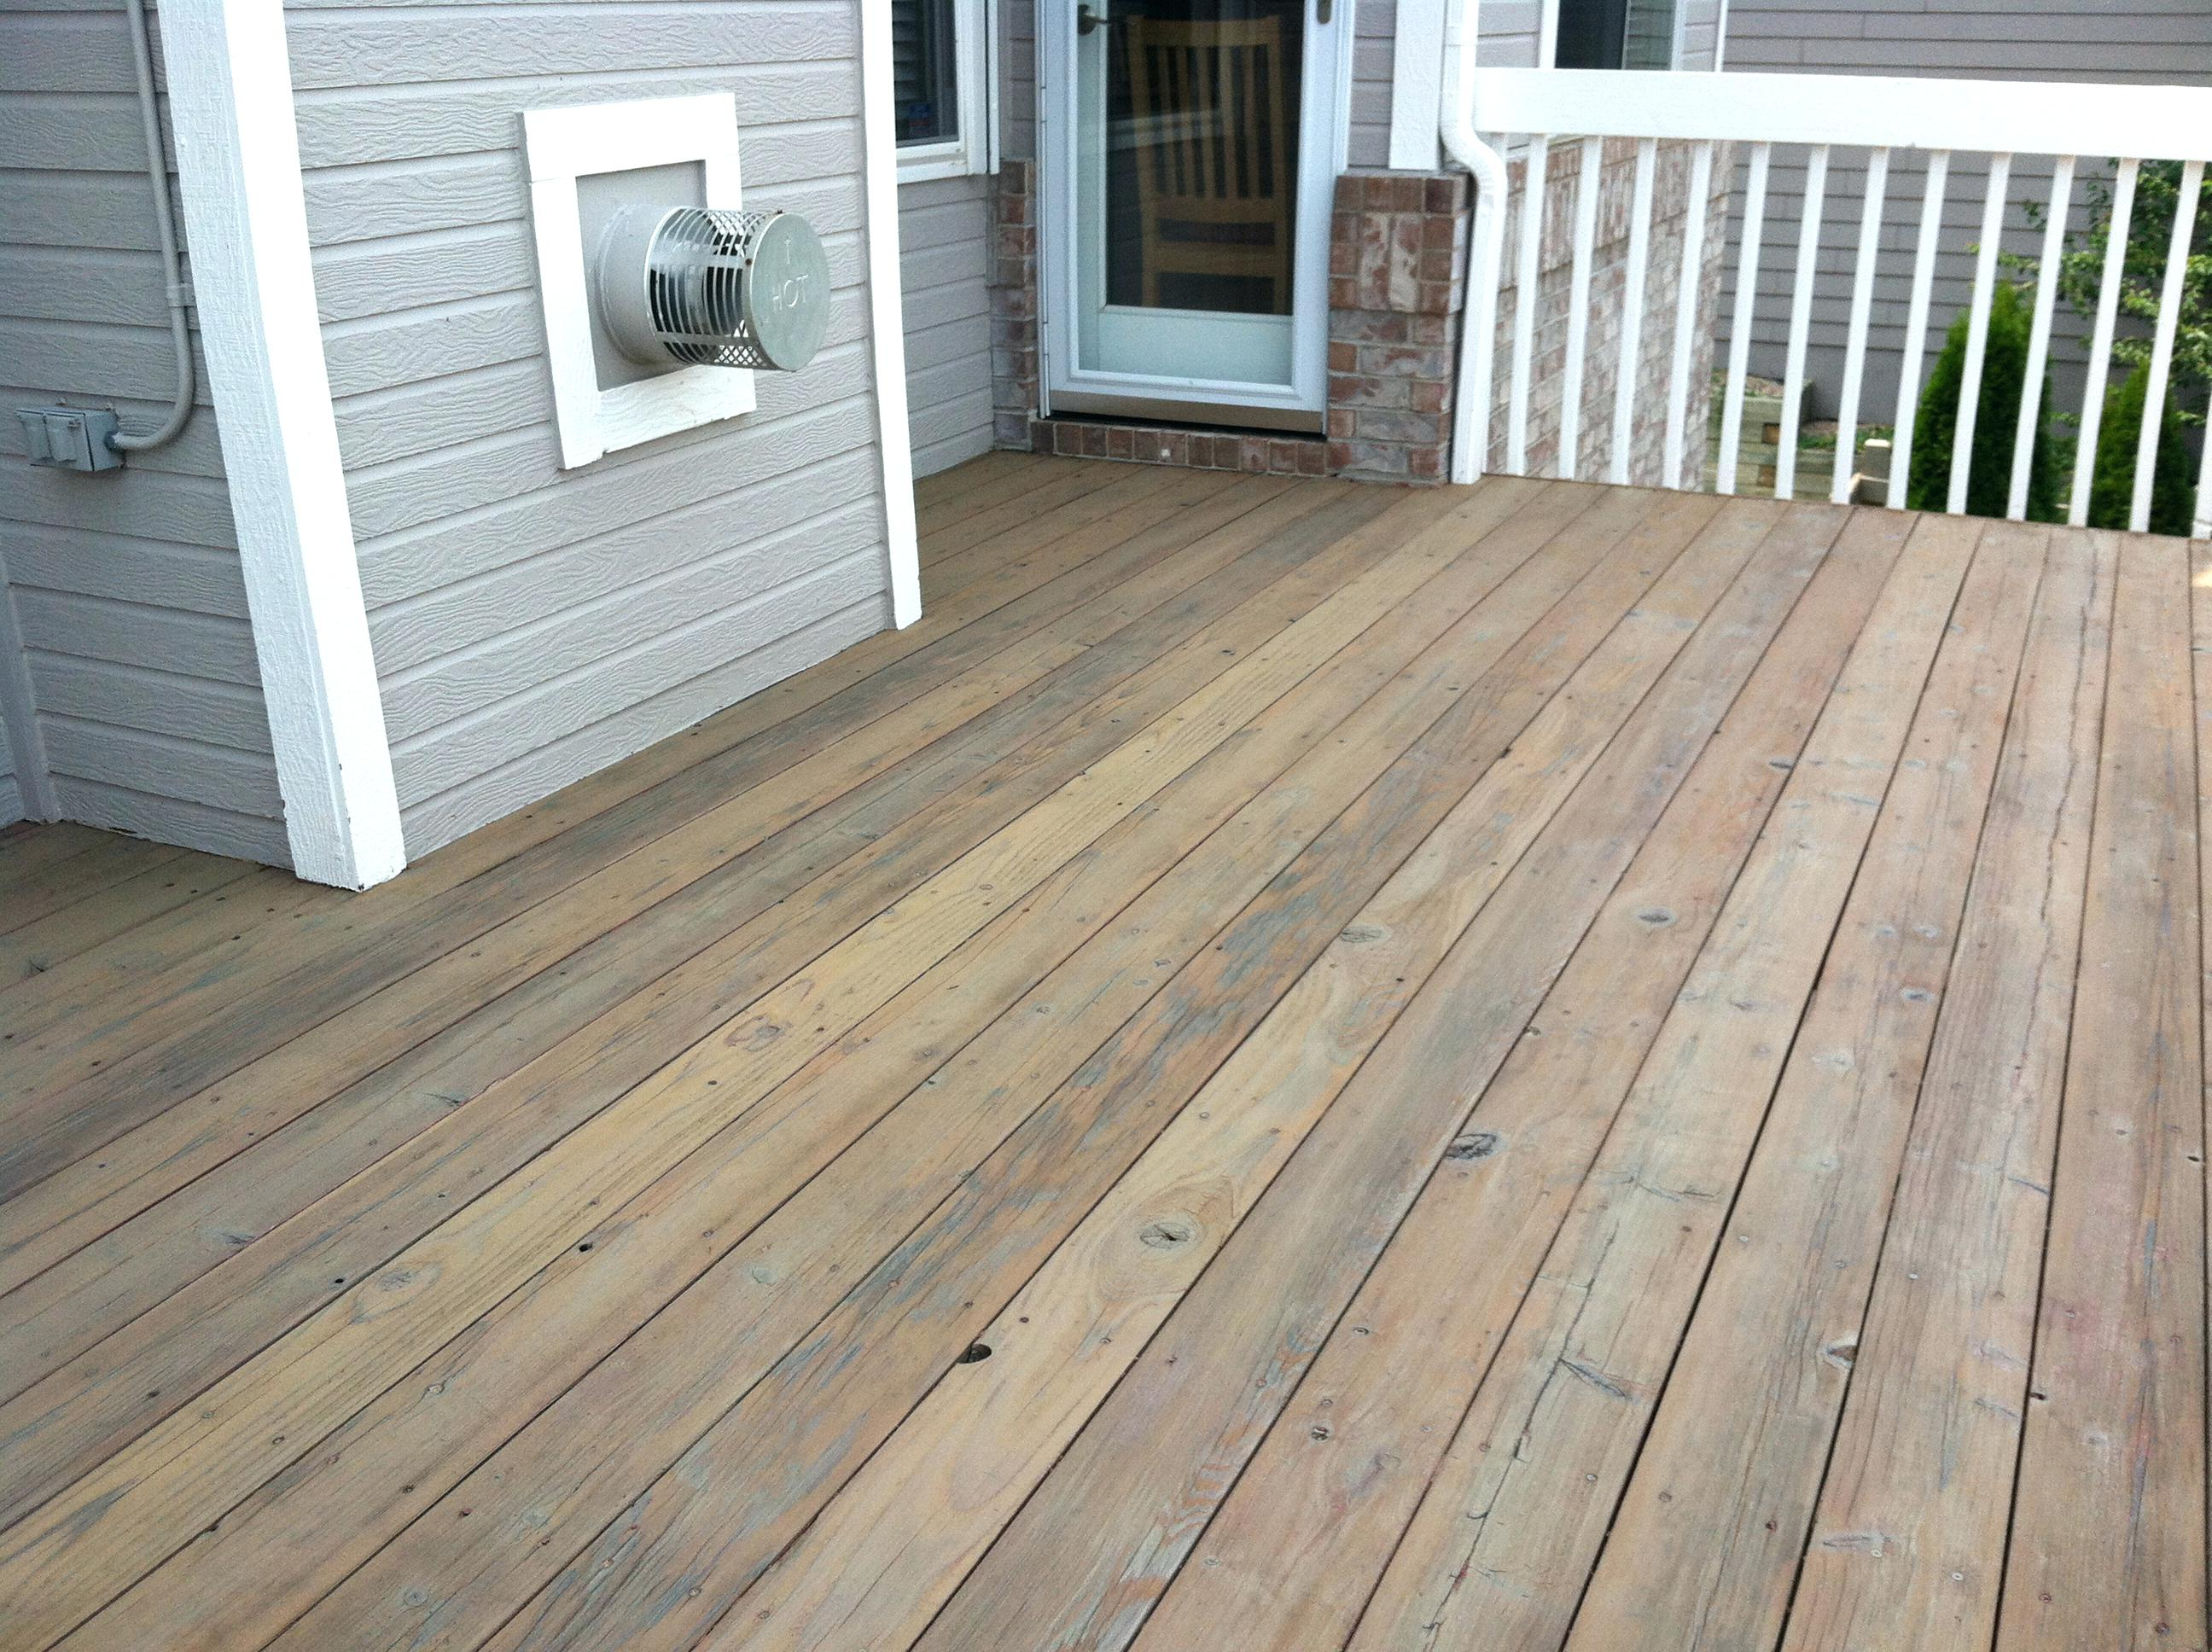 Veranda Composite Decking | Deck Railing Home Depot | Manufactured Decking